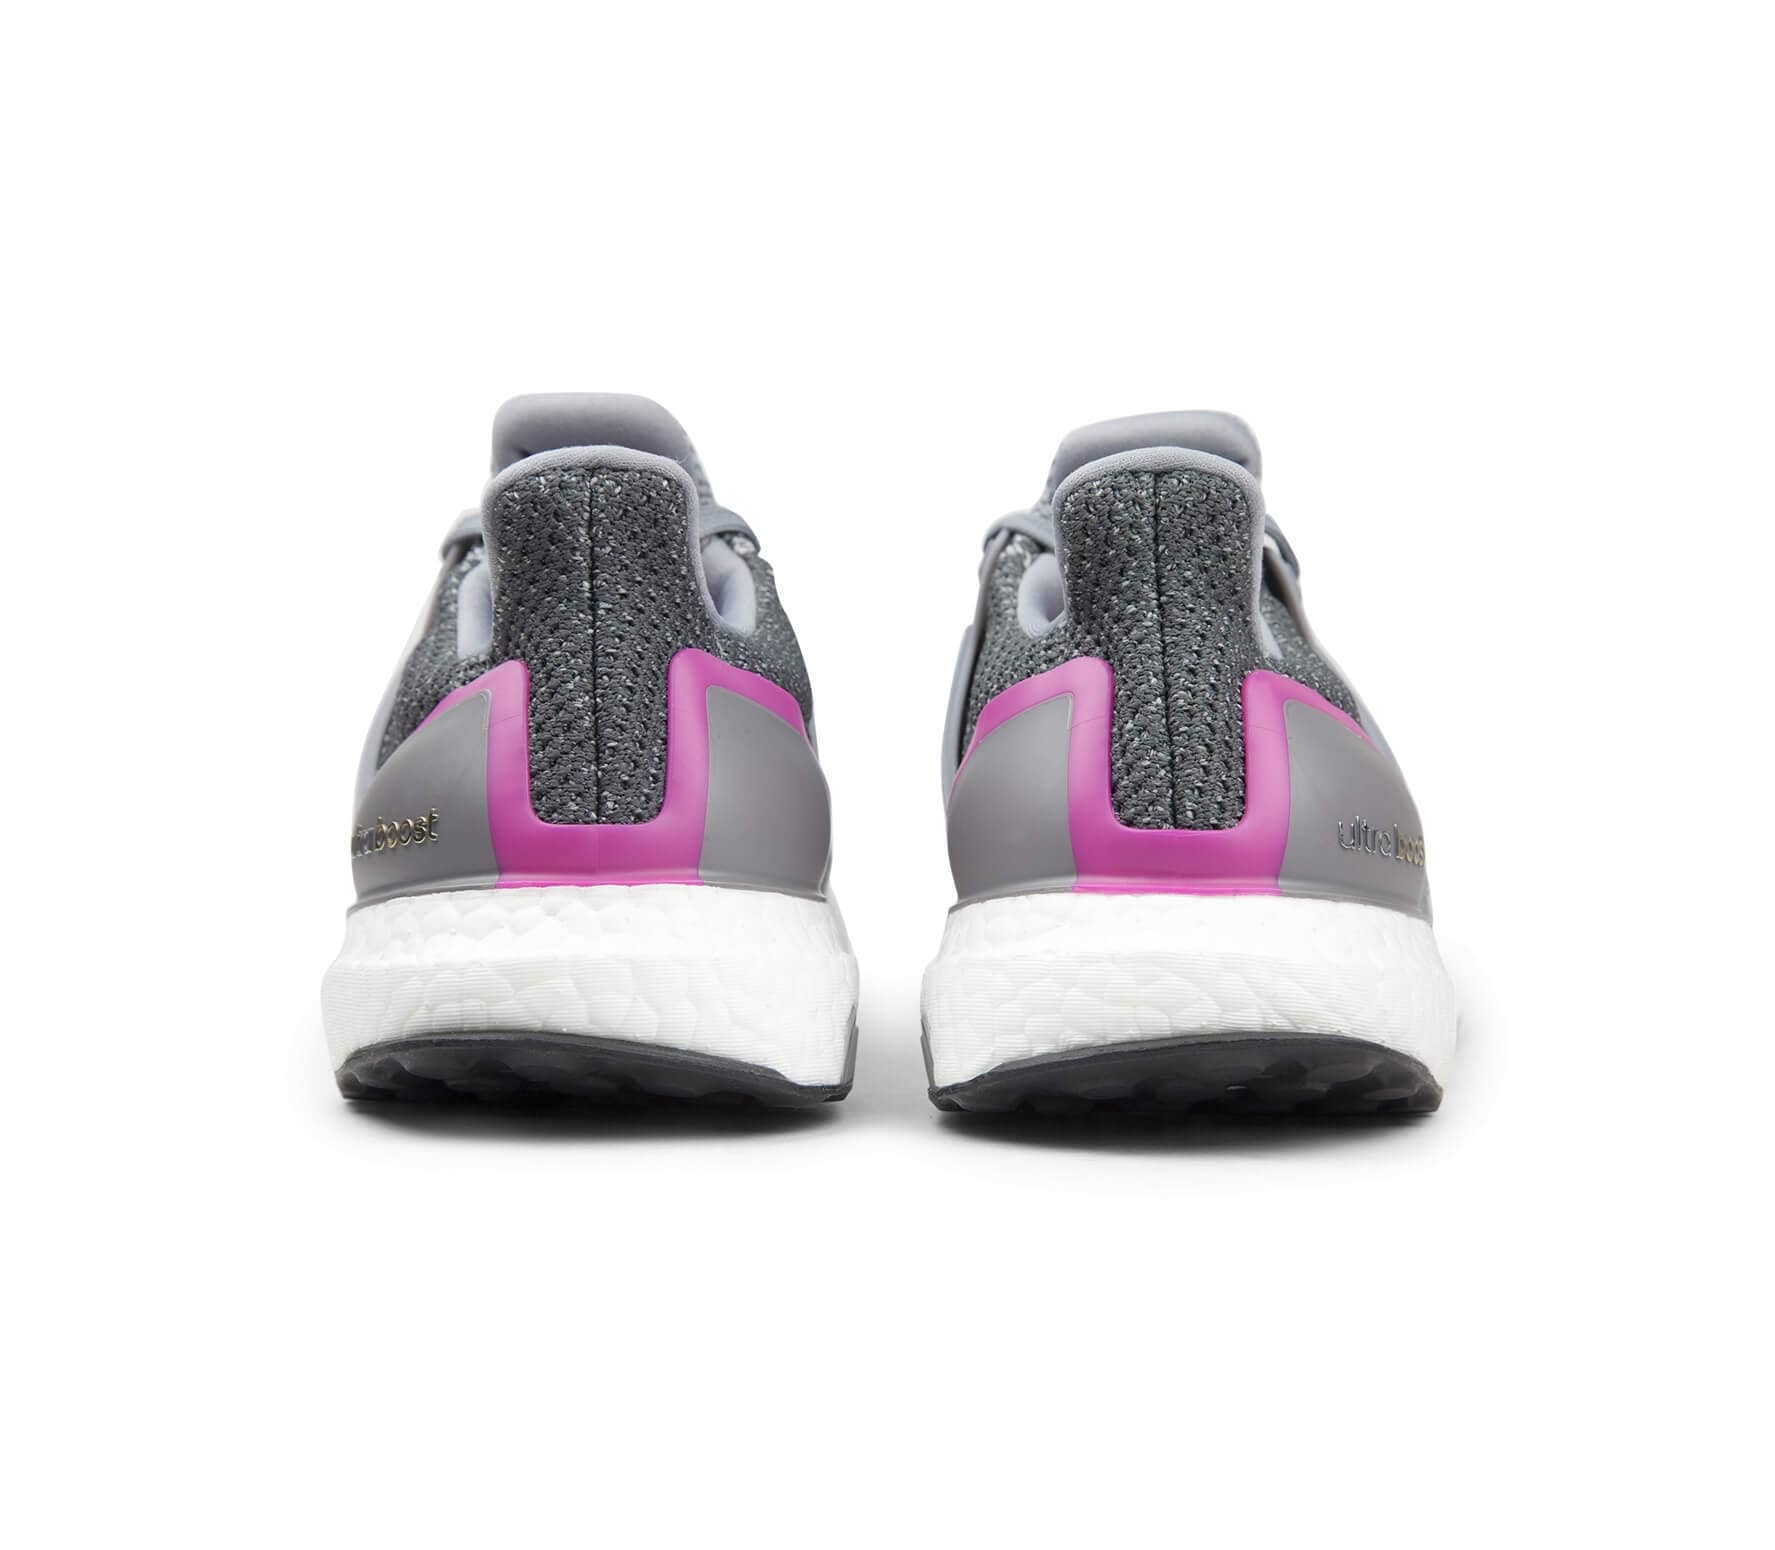 c9354dc81 wholesale adidas ultra boost womens running shoes grey pink dffd7 6c7ba